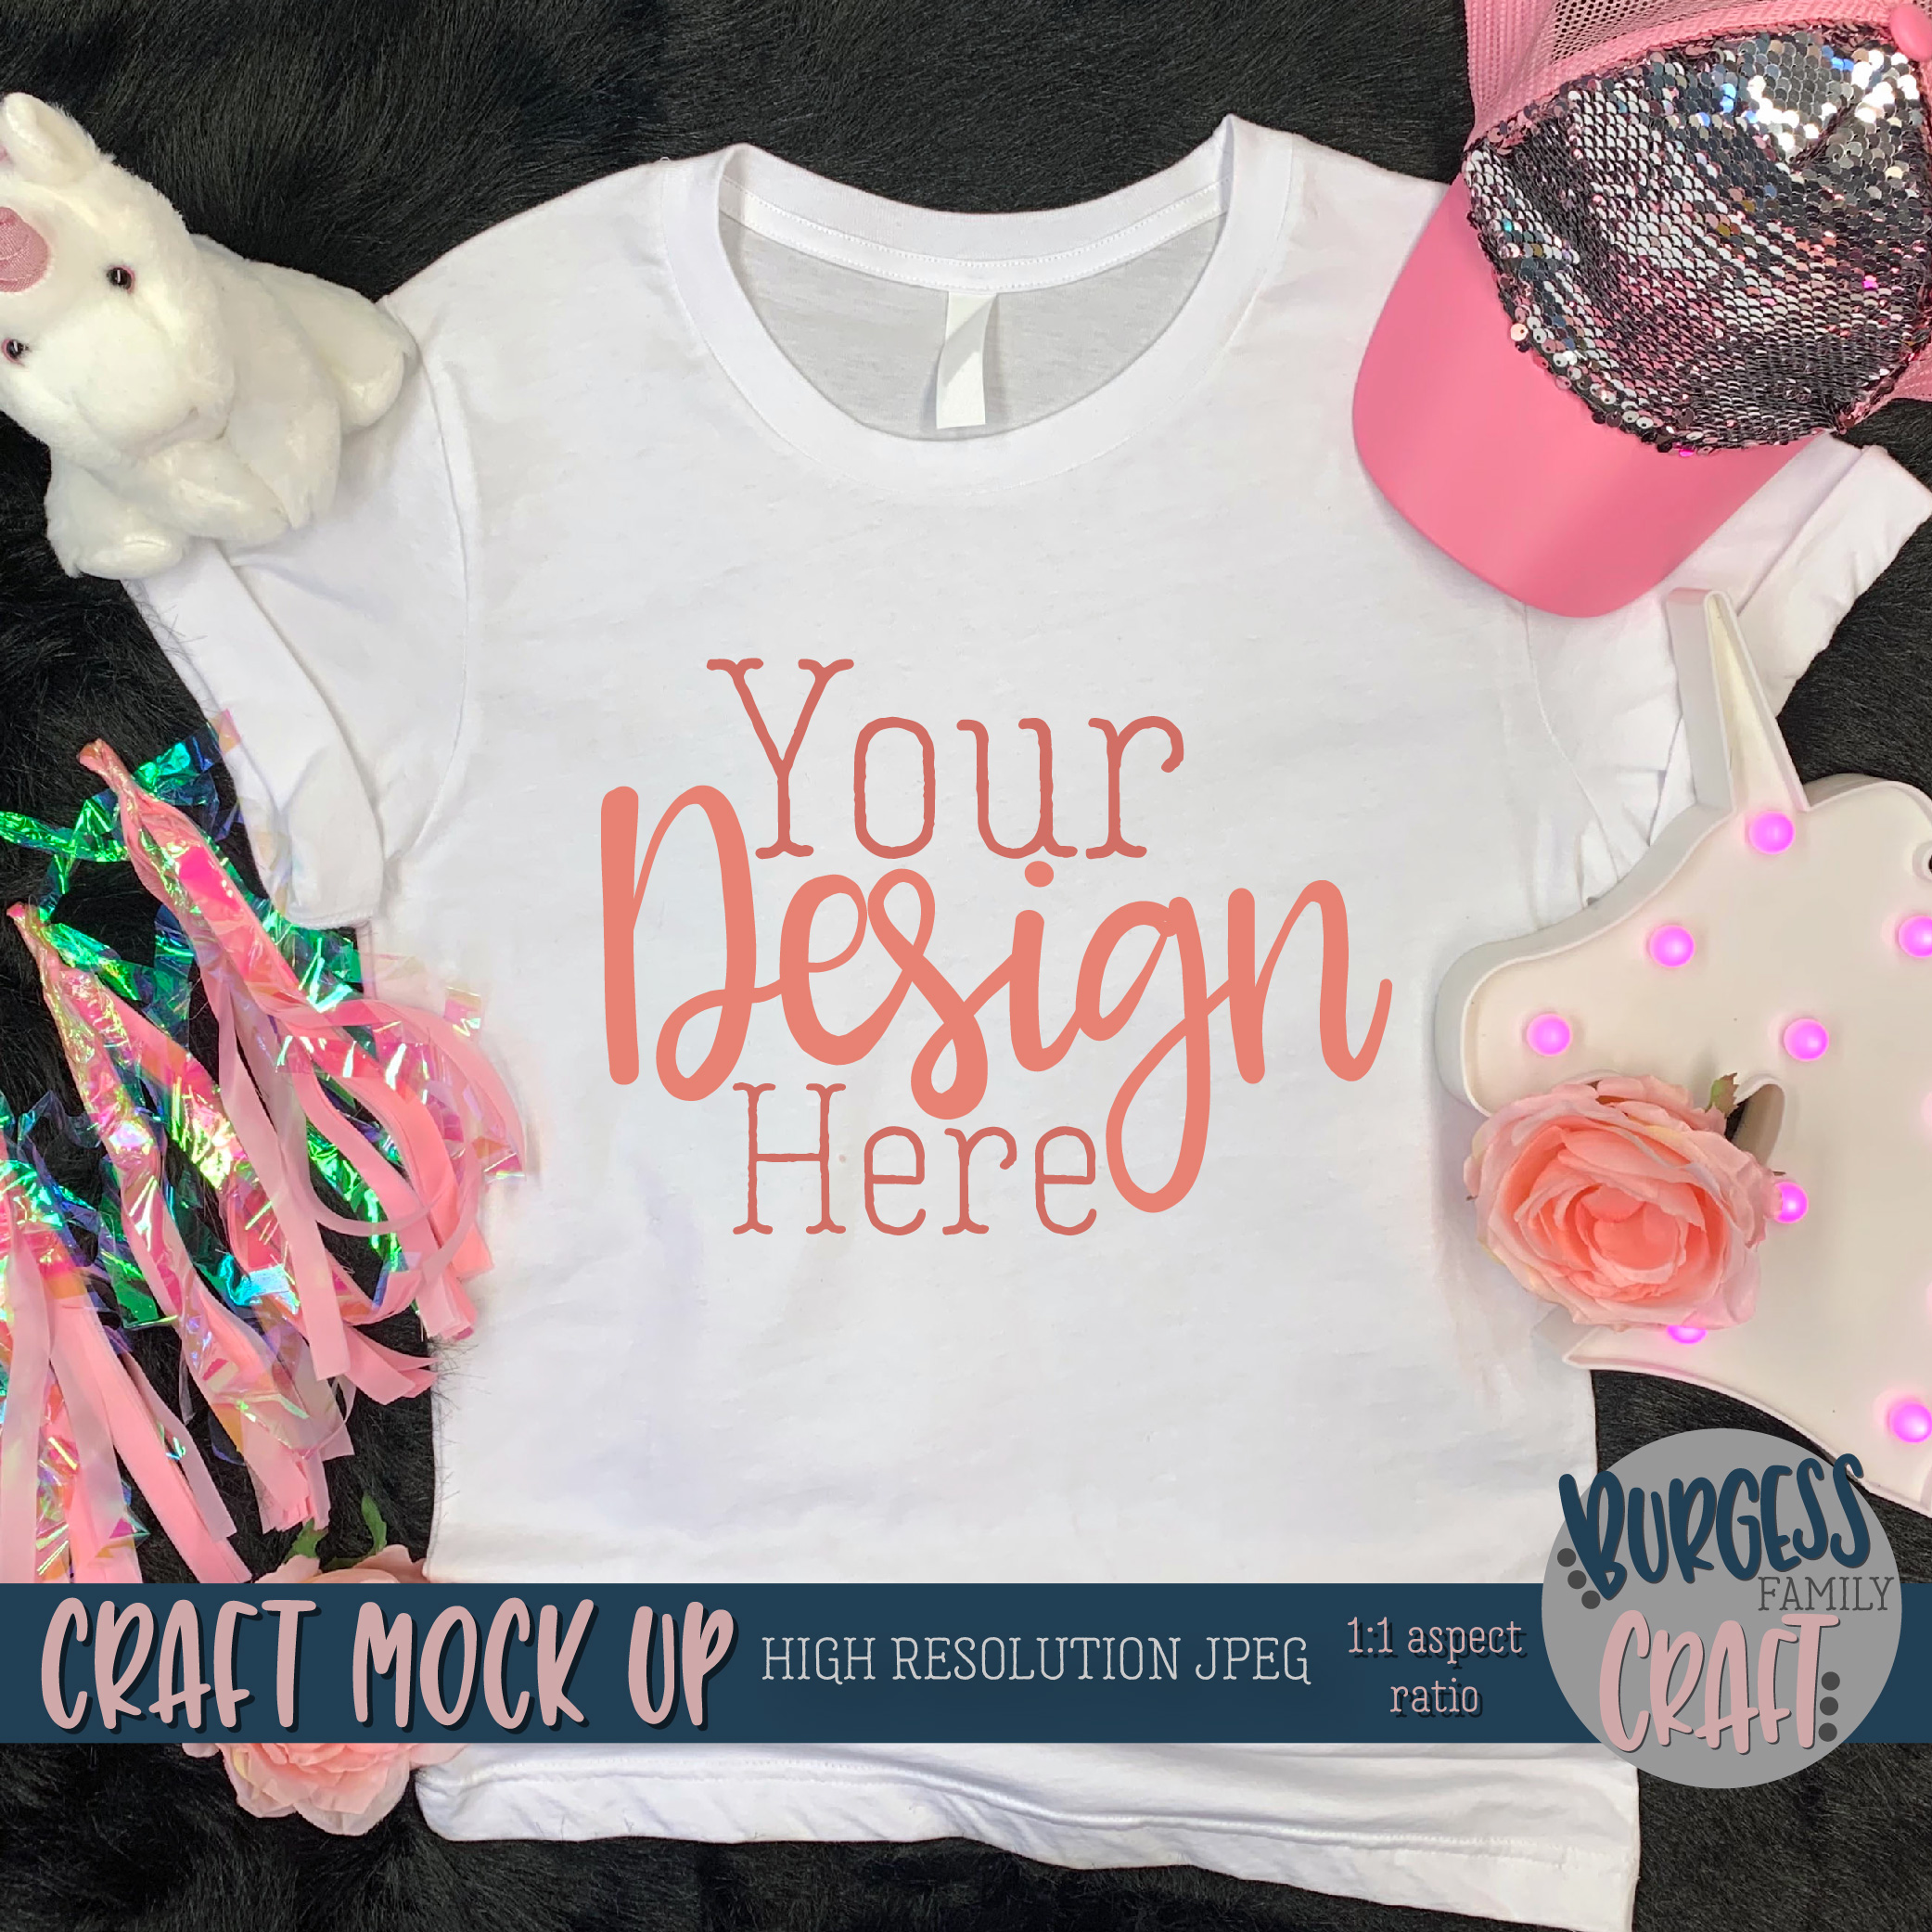 Pink explosion shirt Craft mock up | High Resolution JPEG example image 2